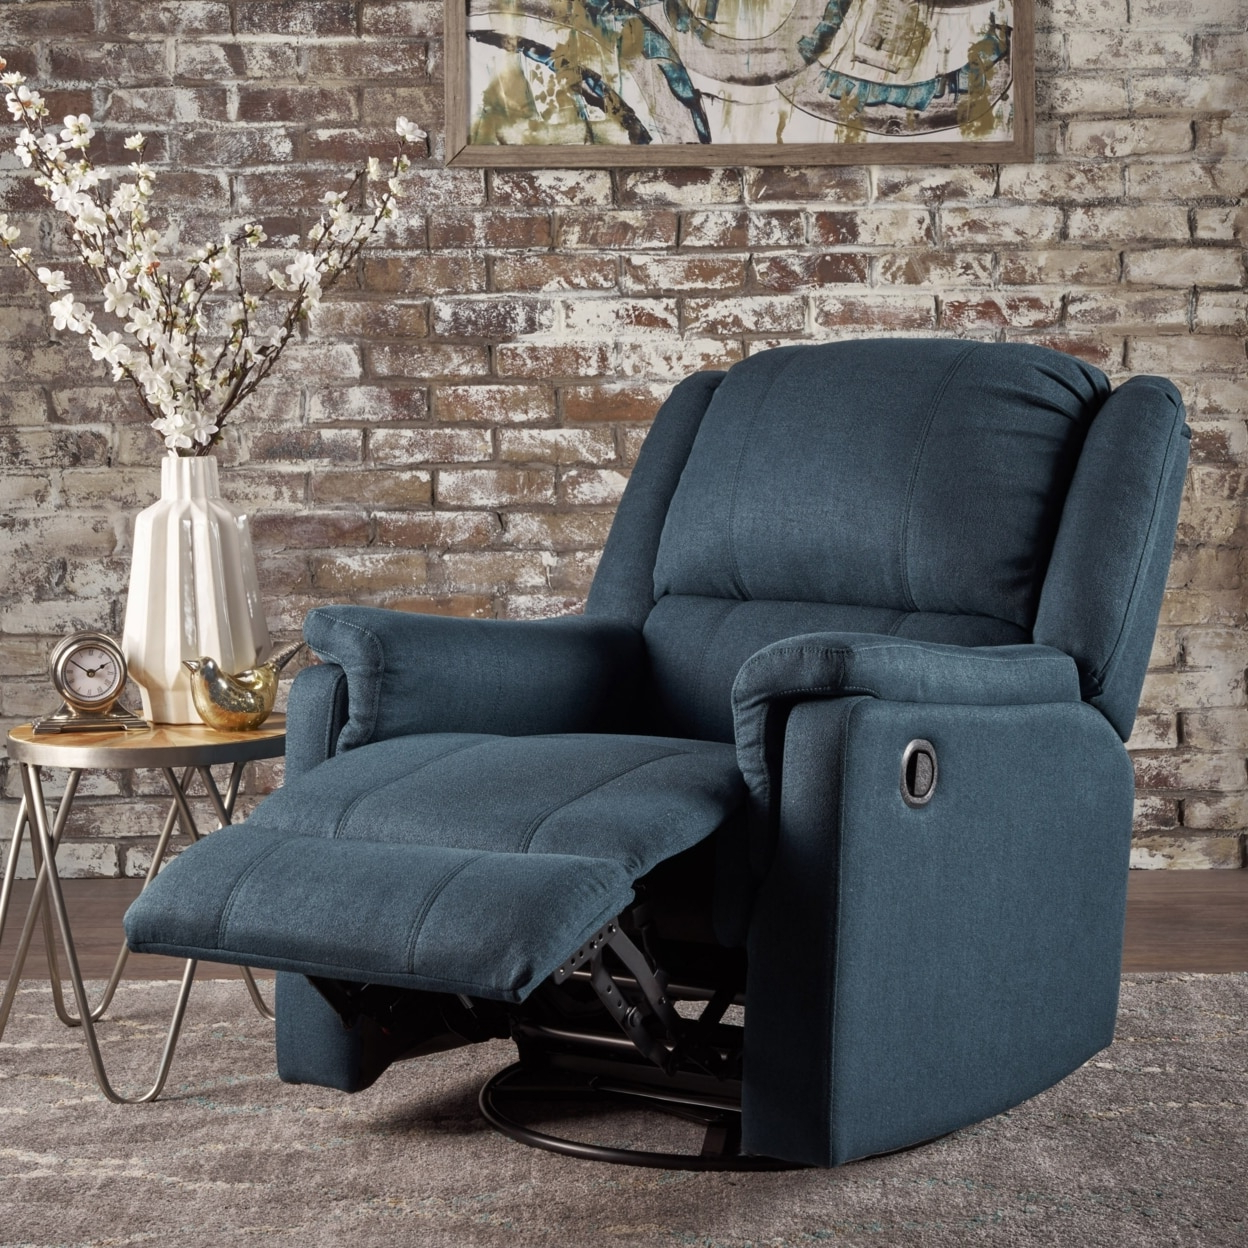 Widely Used Jemma Tufted Fabric Swivel Gliding Recliner Chair In Living Room Pertaining To Decker Ii Fabric Swivel Rocker Recliners (View 6 of 20)